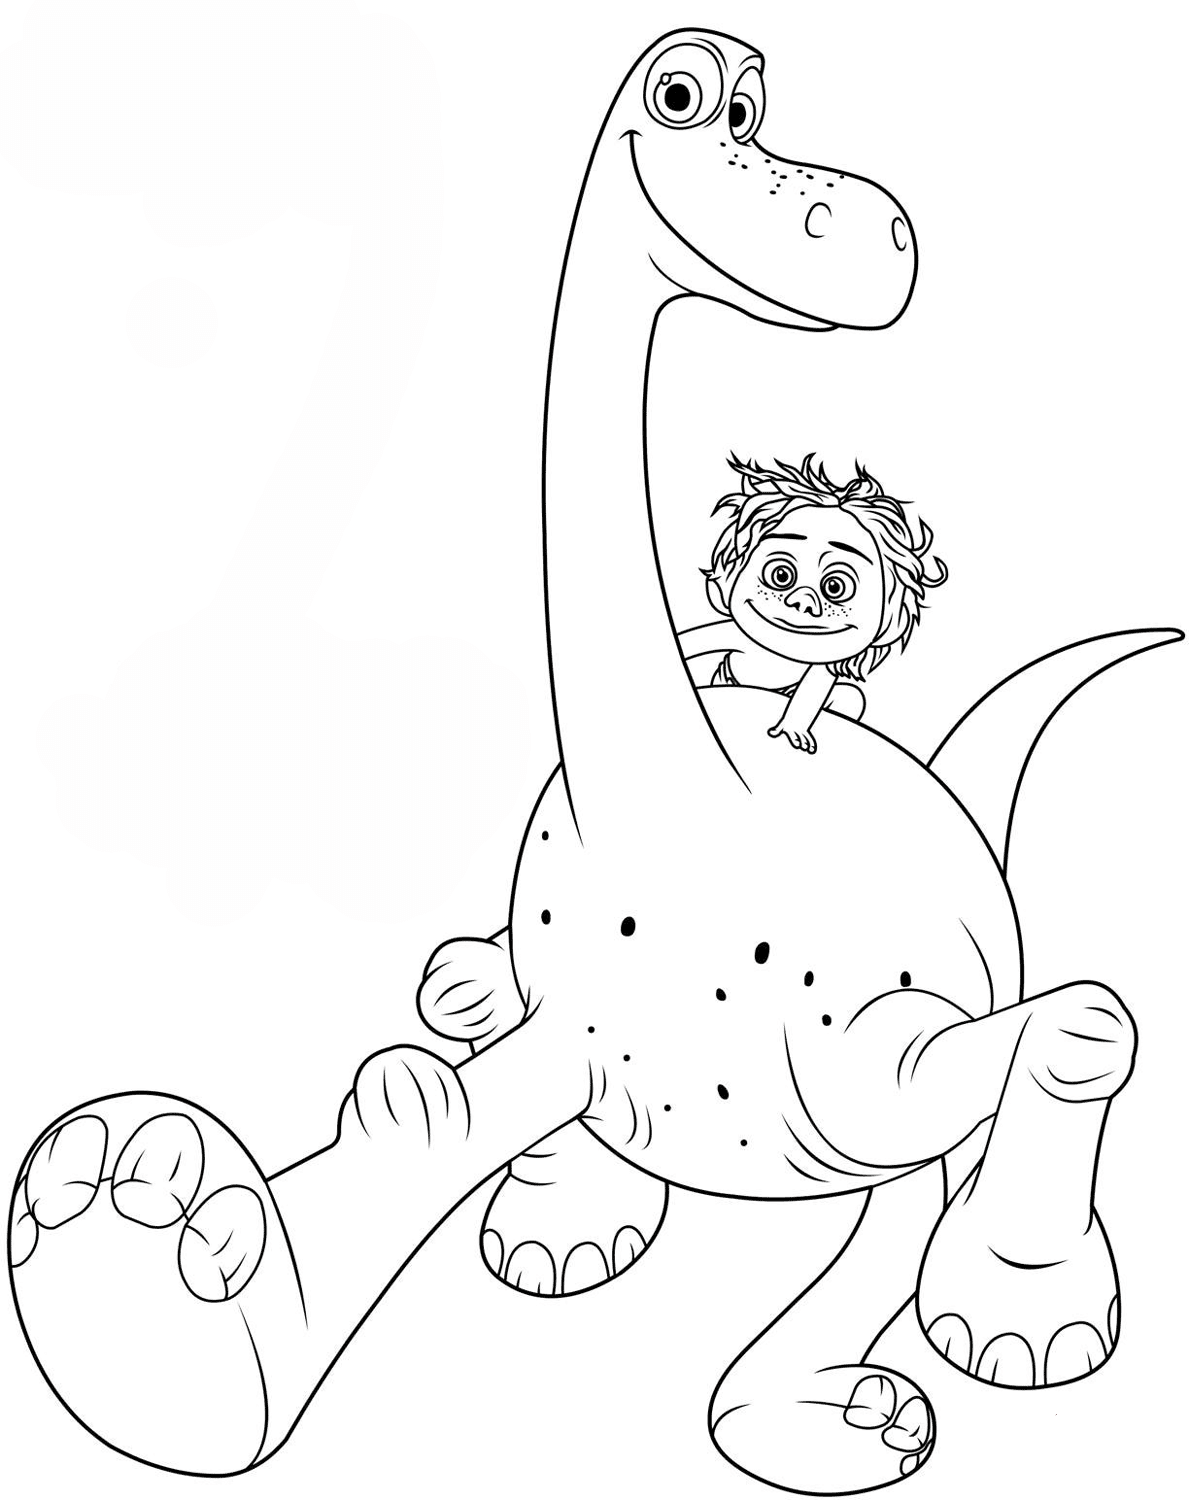 Free The Good Dinosaur Coloring Pages To Print For Kids Download And Color